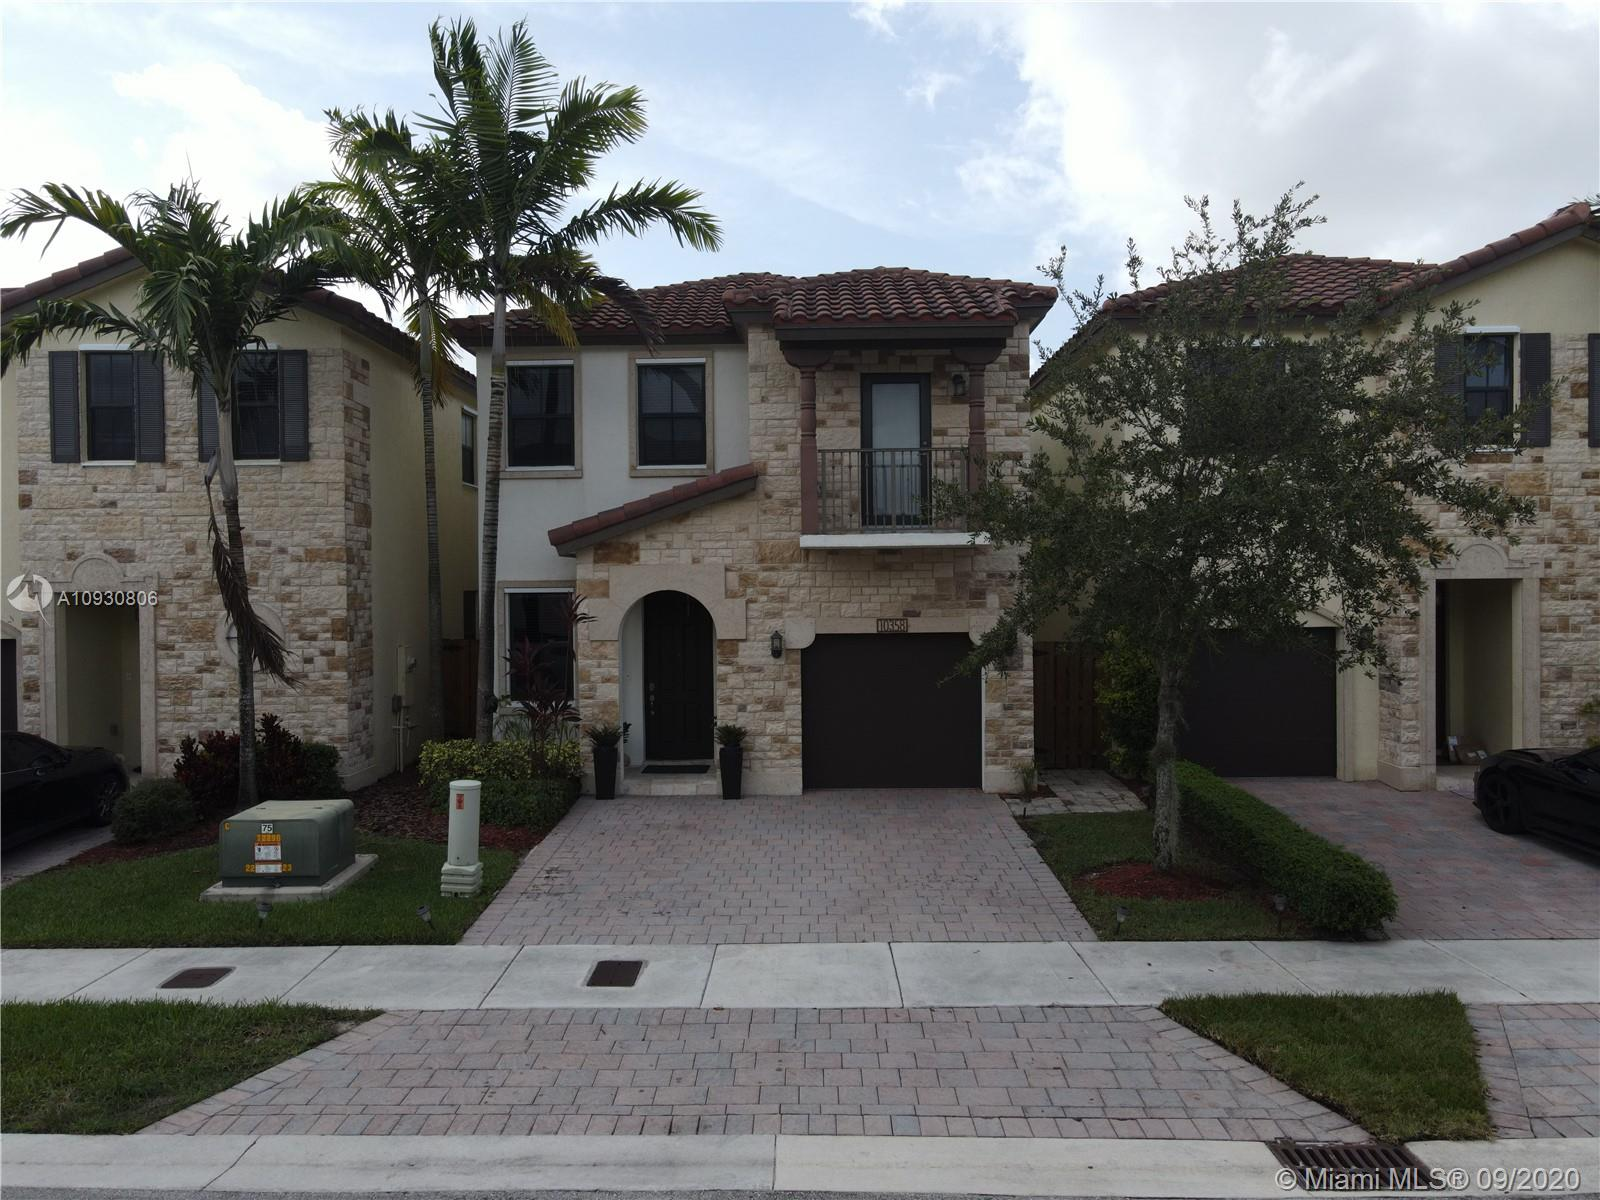 Details for 10358 70th Ter, Doral, FL 33178